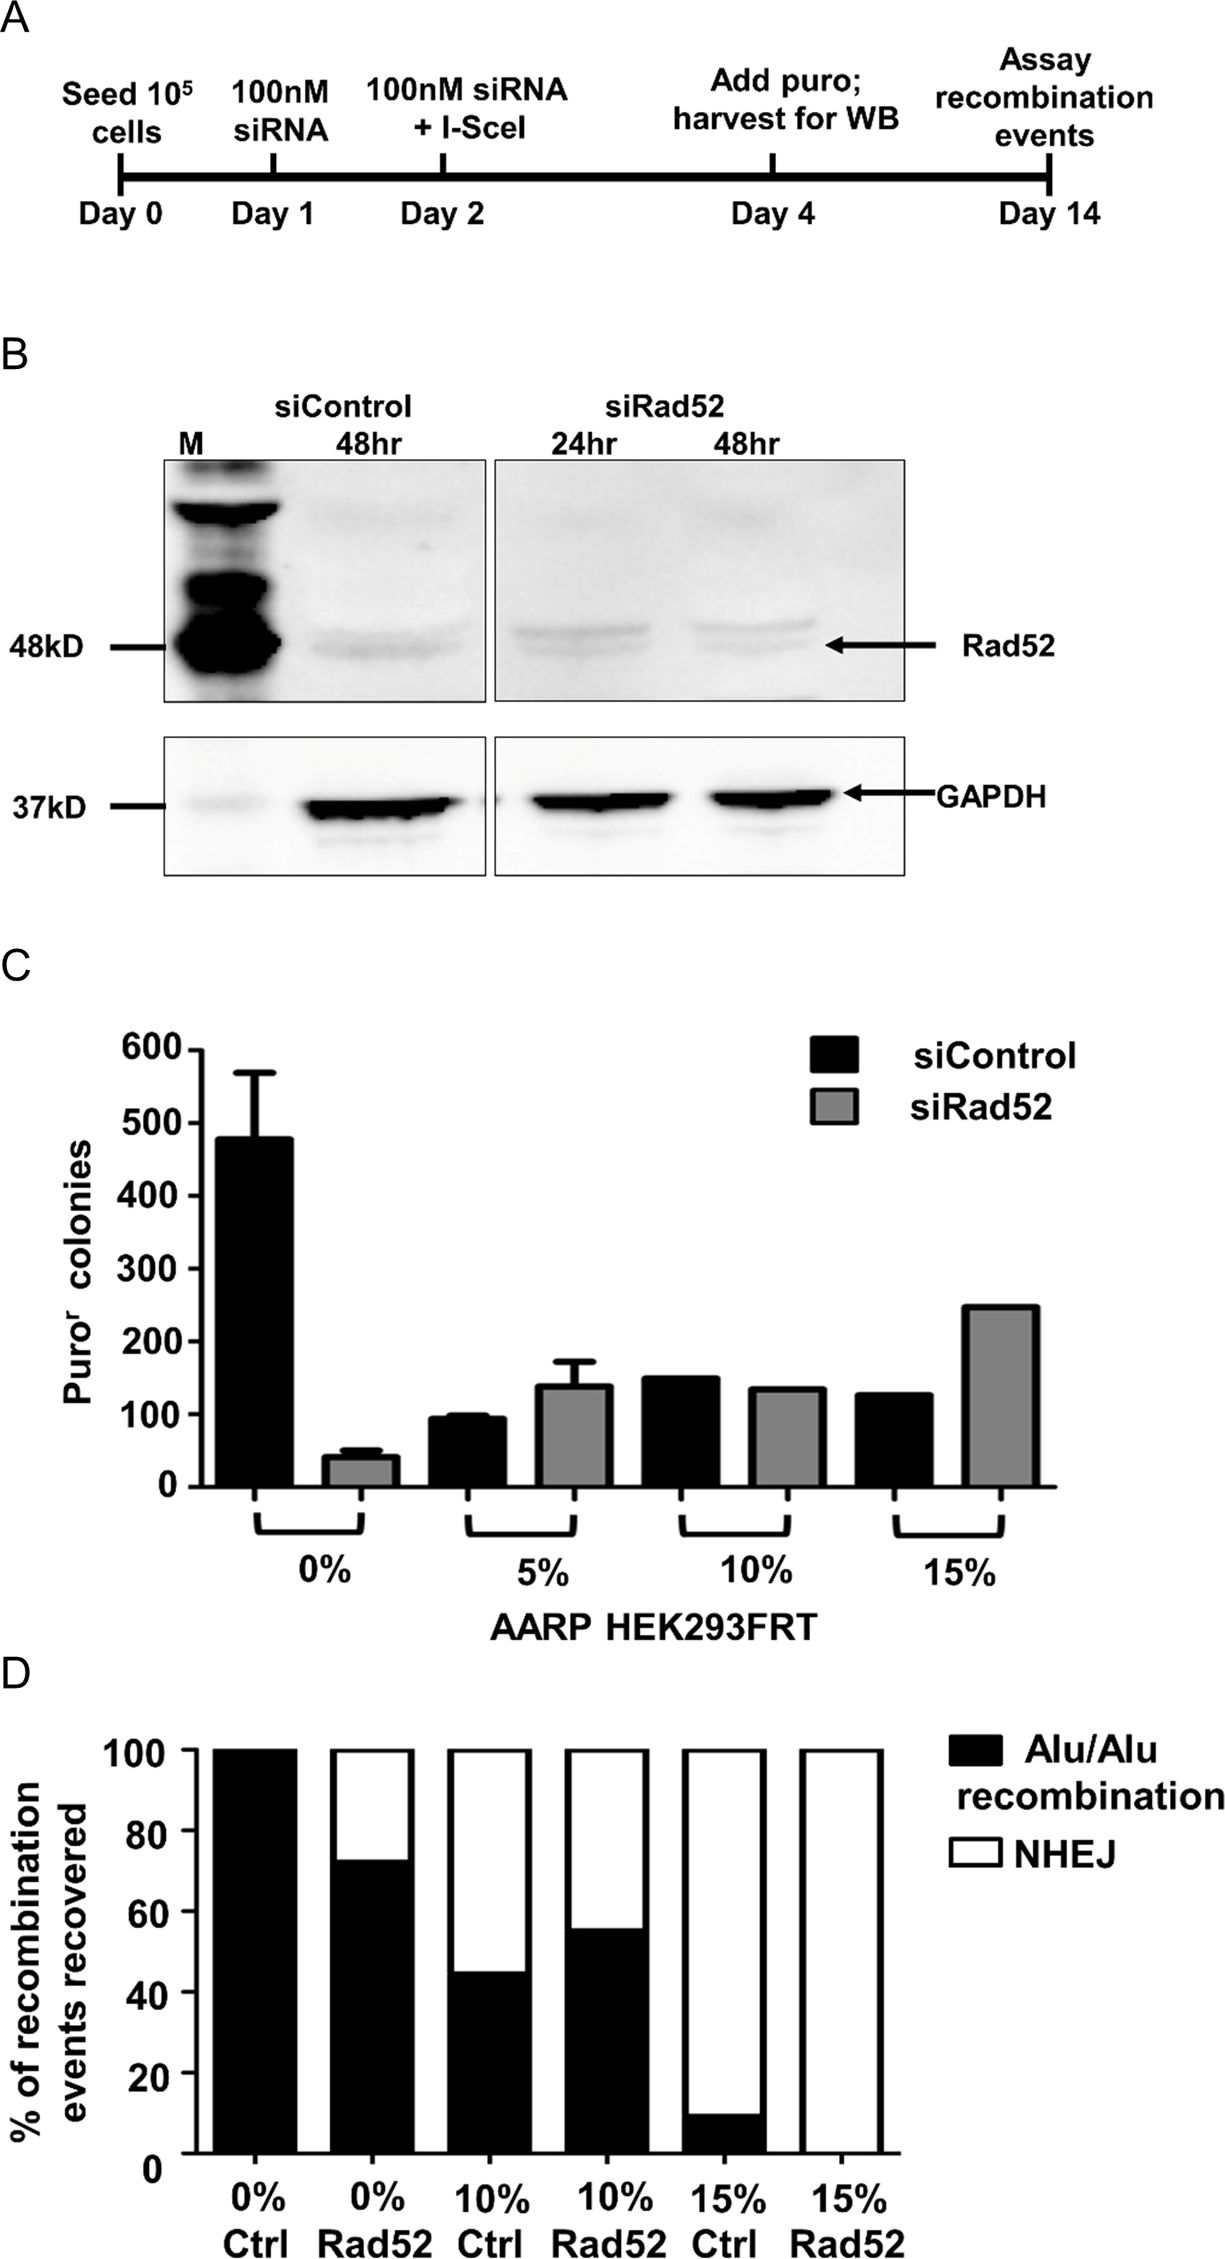 Experiments testing the effect of Rad52 siRNA knockdown in AARP HEK293FRT cells.